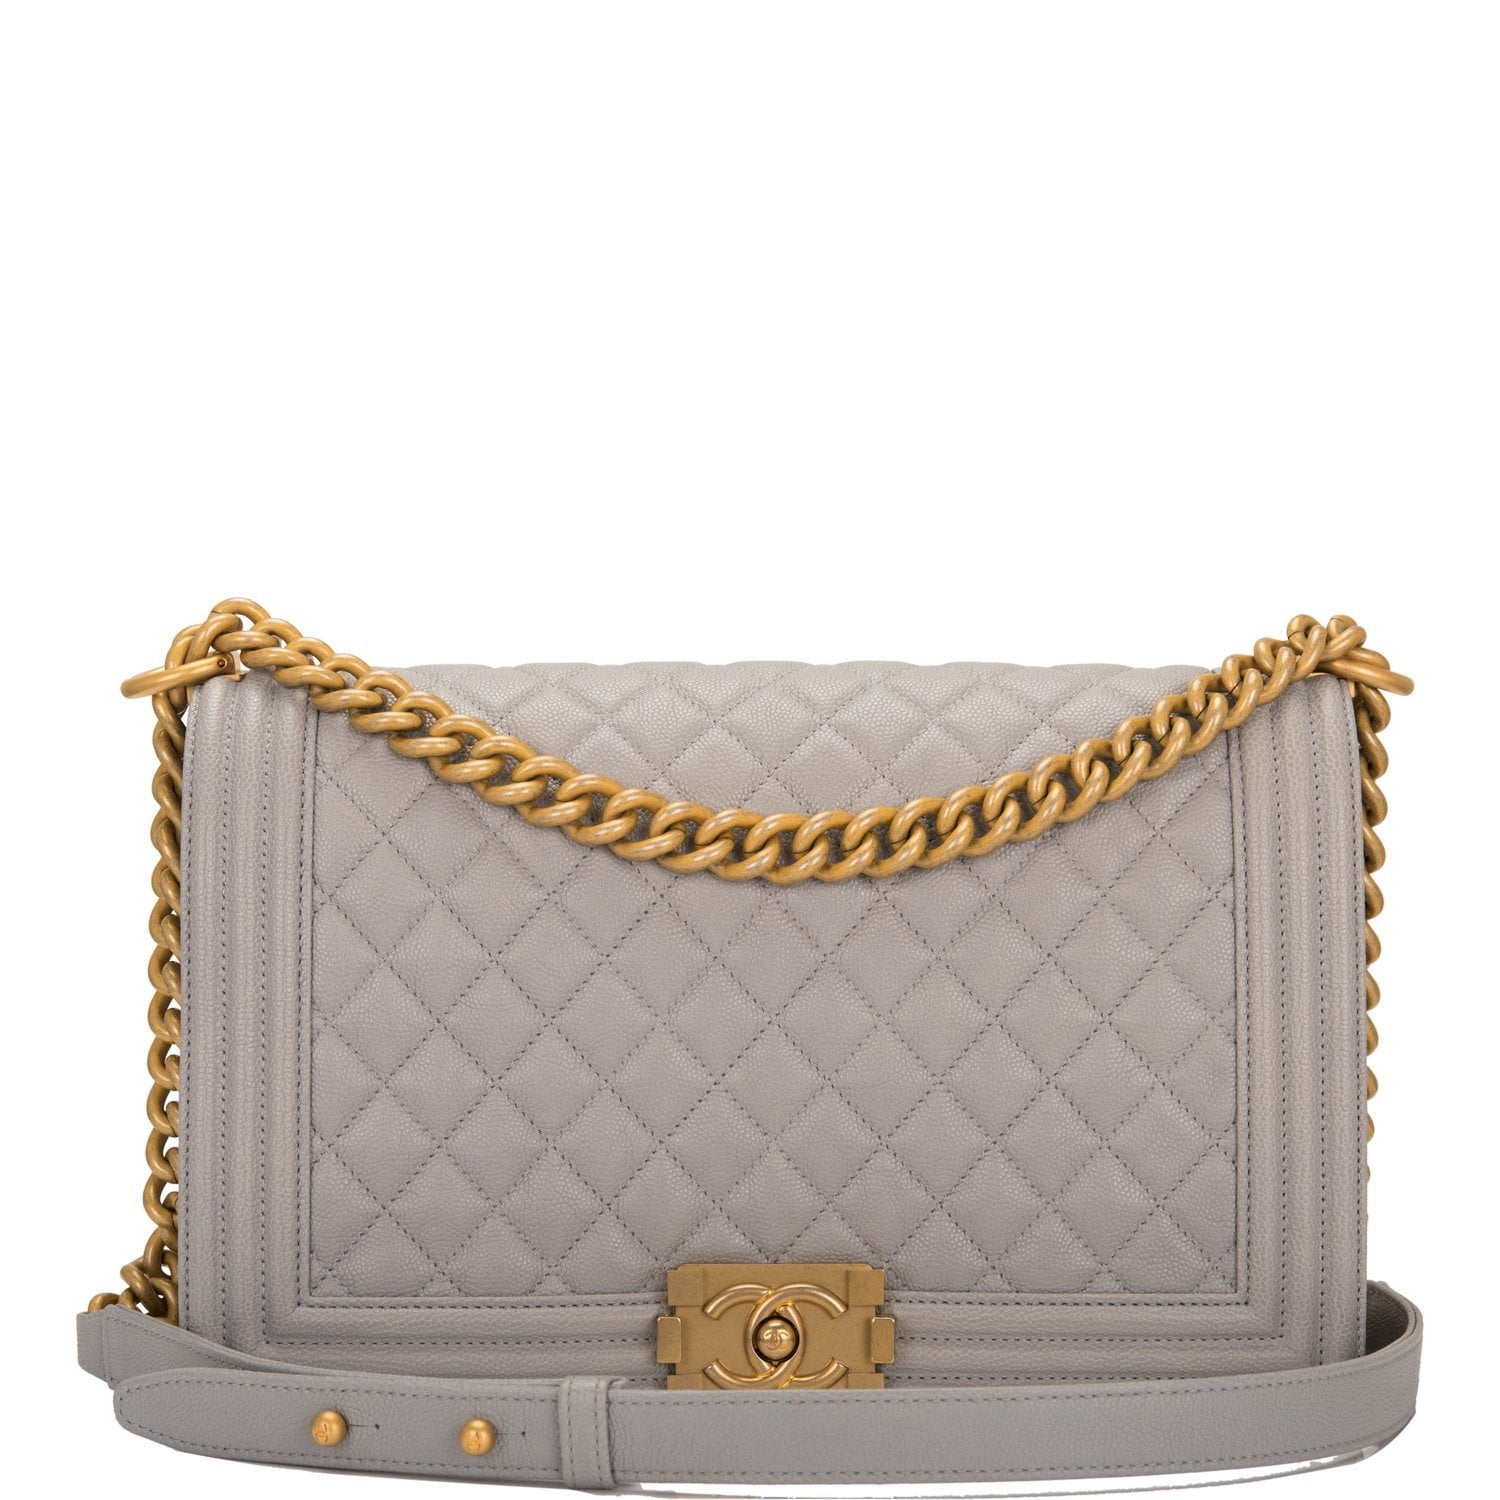 6e334bfba9af7c Chanel Grey Quilted Caviar New Medium Boy Bag – Madison Avenue Couture